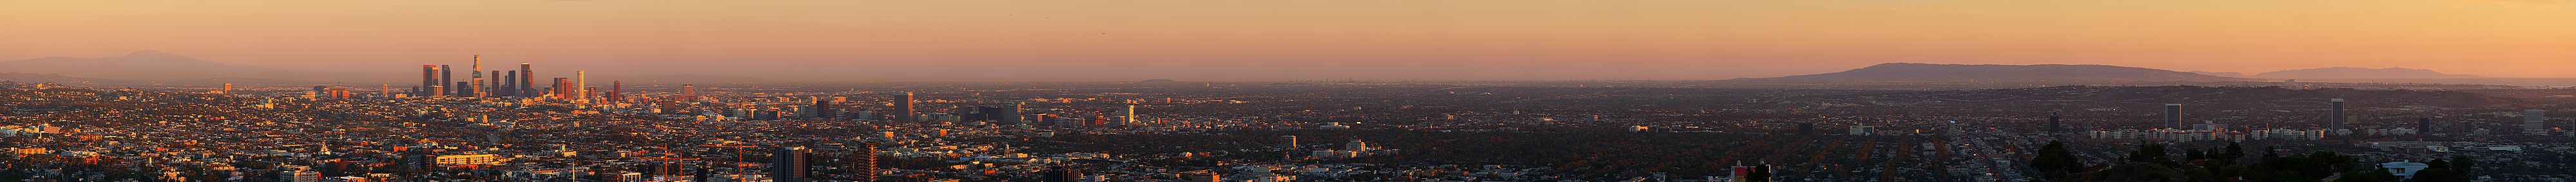 Panorama of Los Angeles from mountains to ocean as viewed from Mulholland Drive - visible are downtown, Hollywood, Wilshire Blvd, Port of Long Beach, LAX